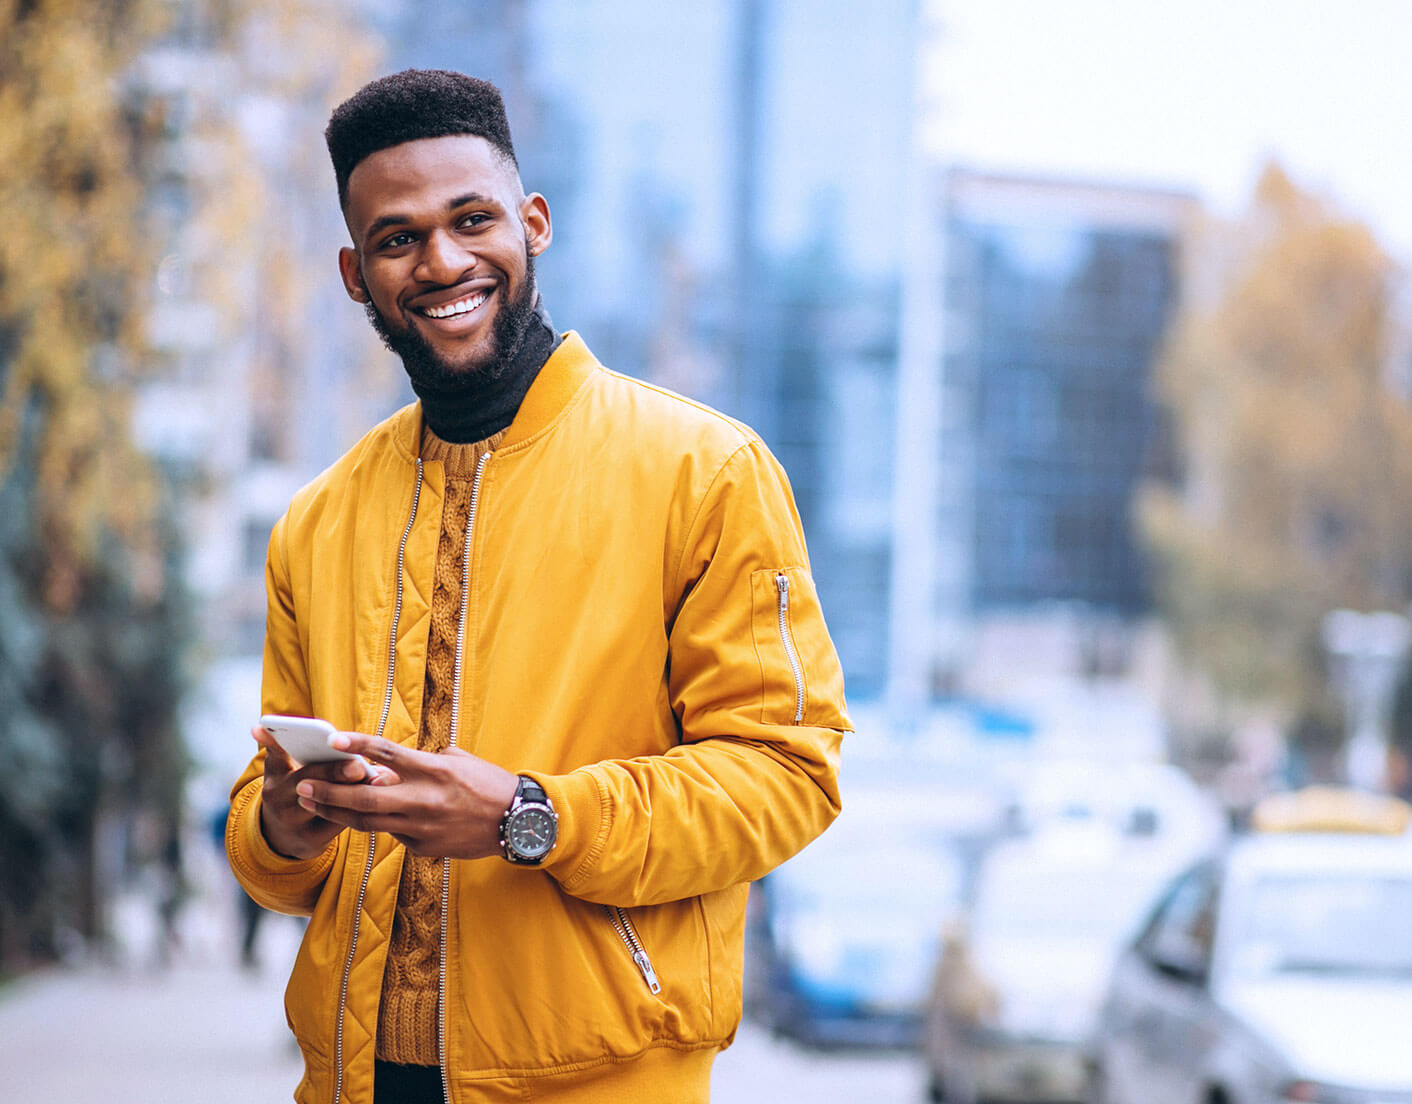 black man in orange jacket outside holding mobile phone looking off screen